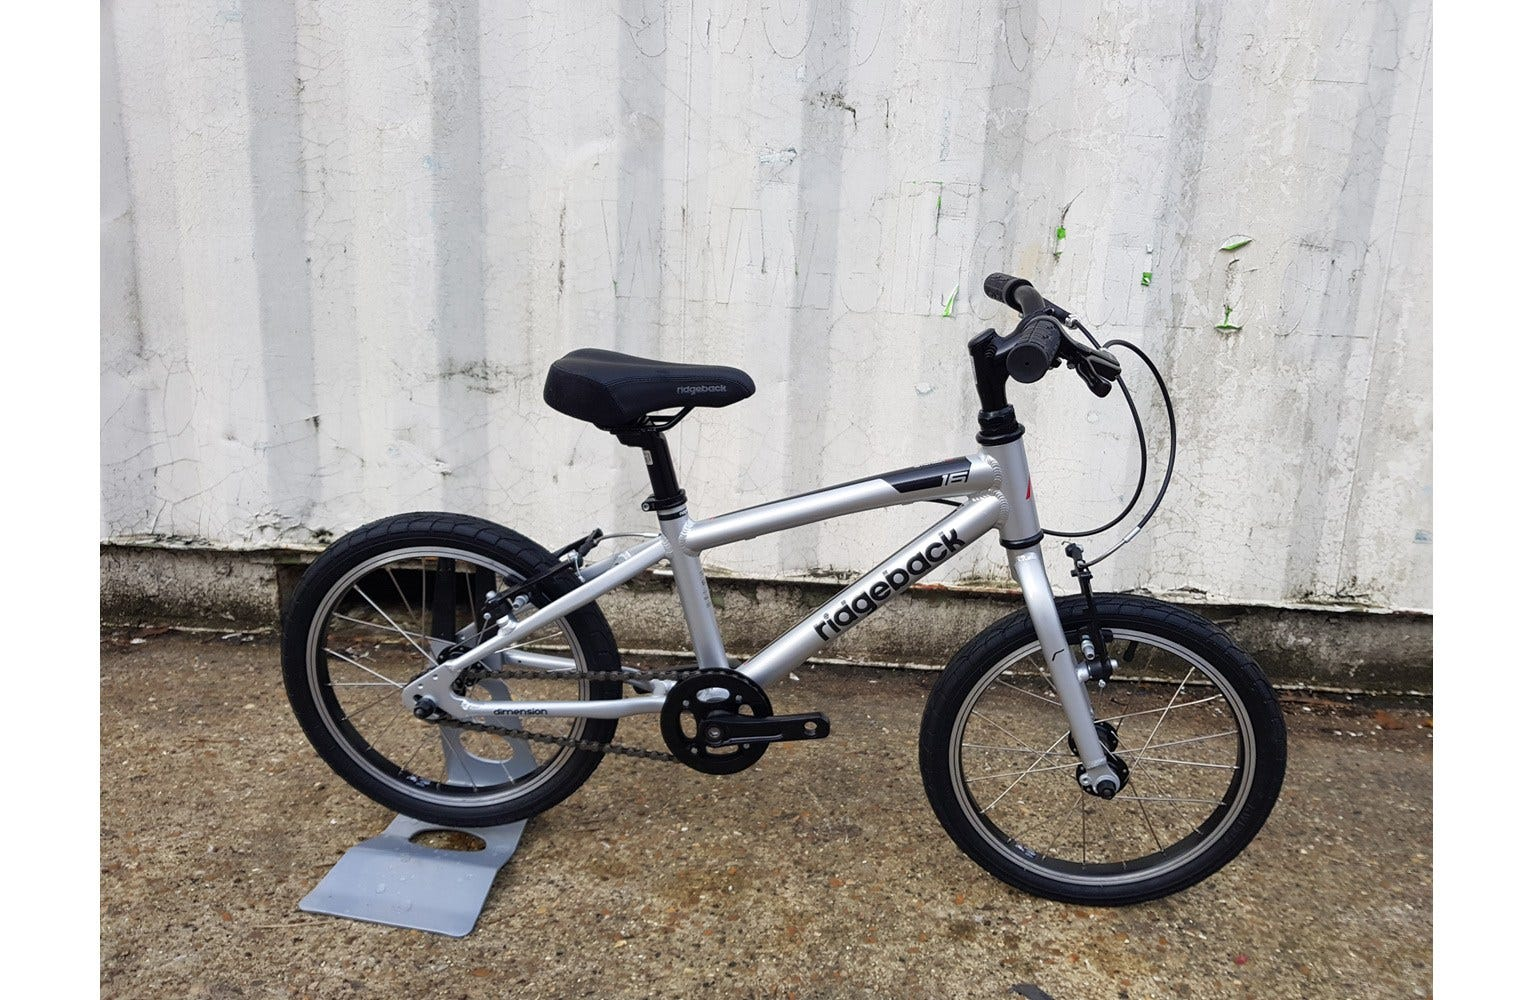 Ridgeback Dimension 16 inch Ex Brand Sample Bike - Silver